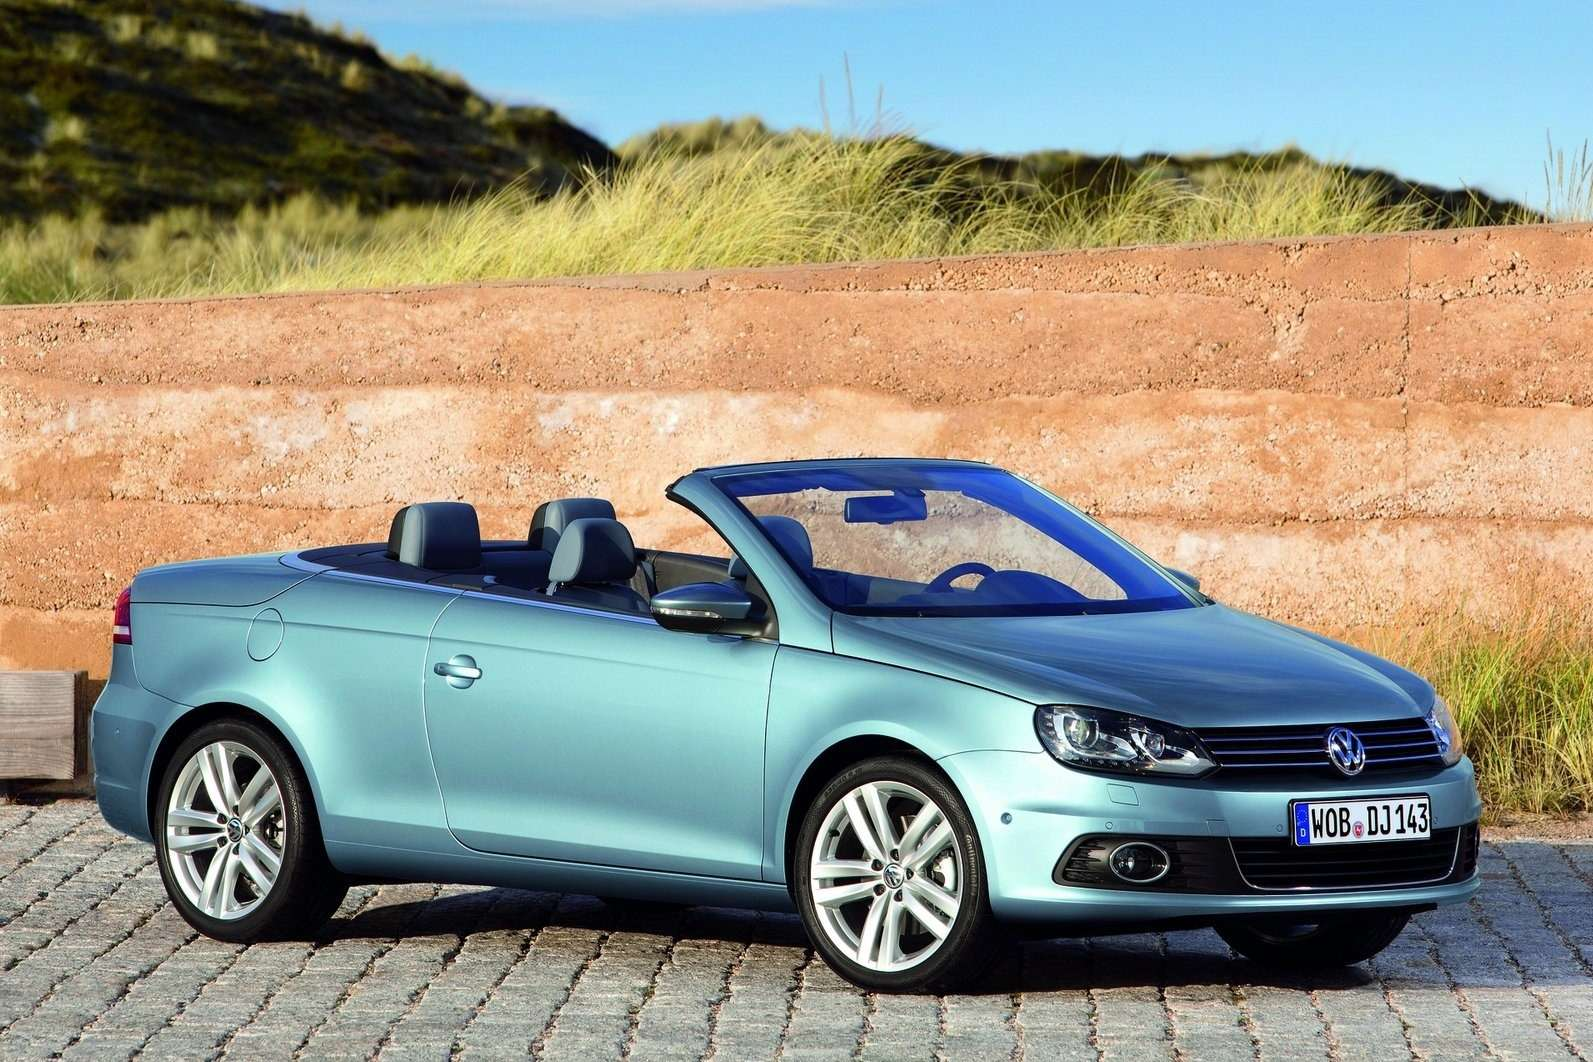 Volkswagen-Eos_2011_1600x1200_wallpaper_04